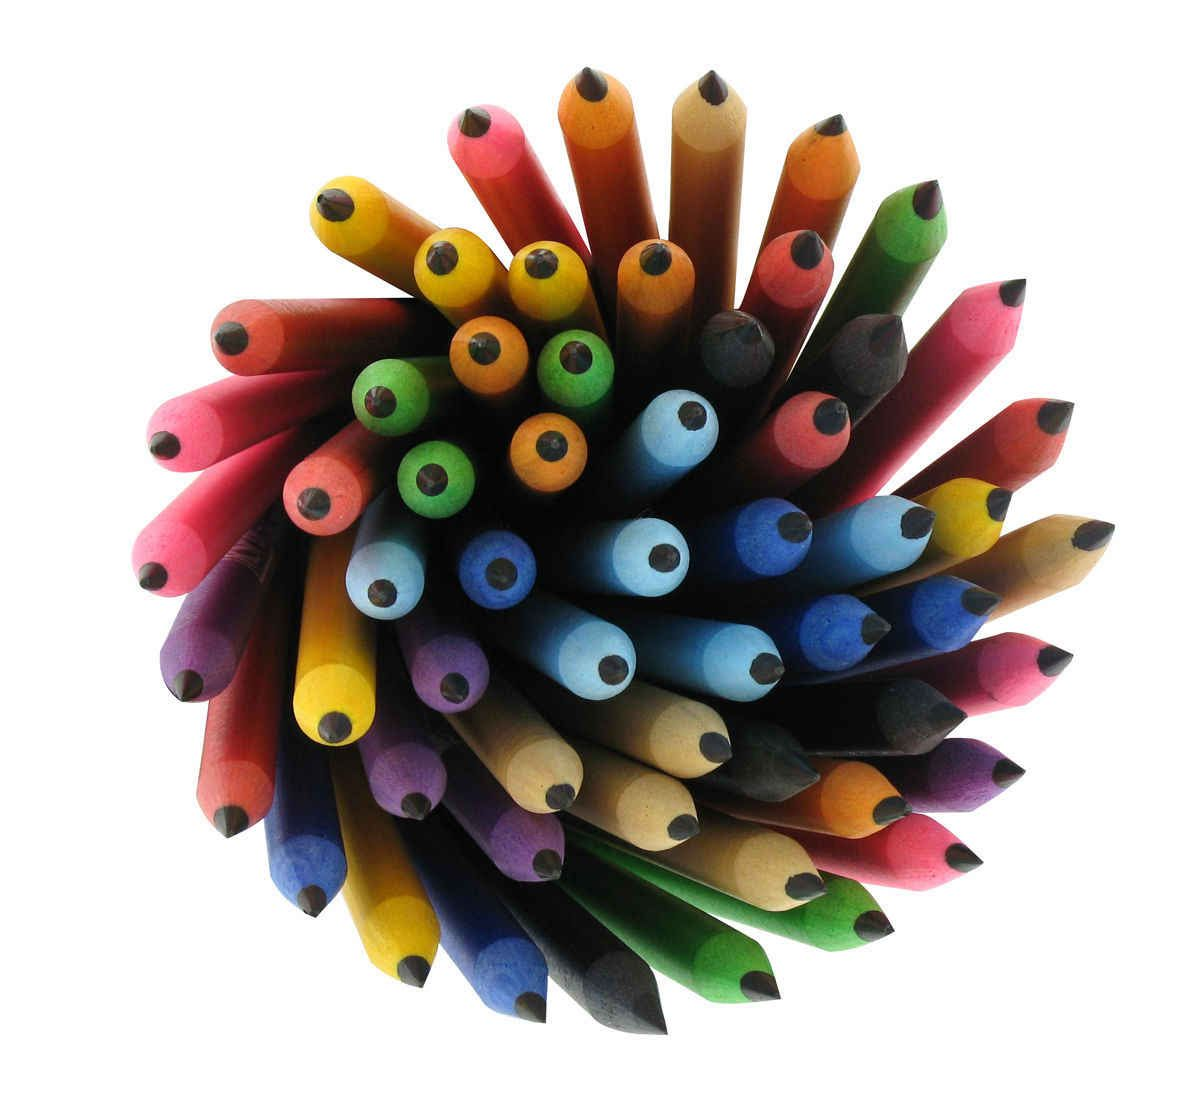 Pencils made from Recycled CD Cases